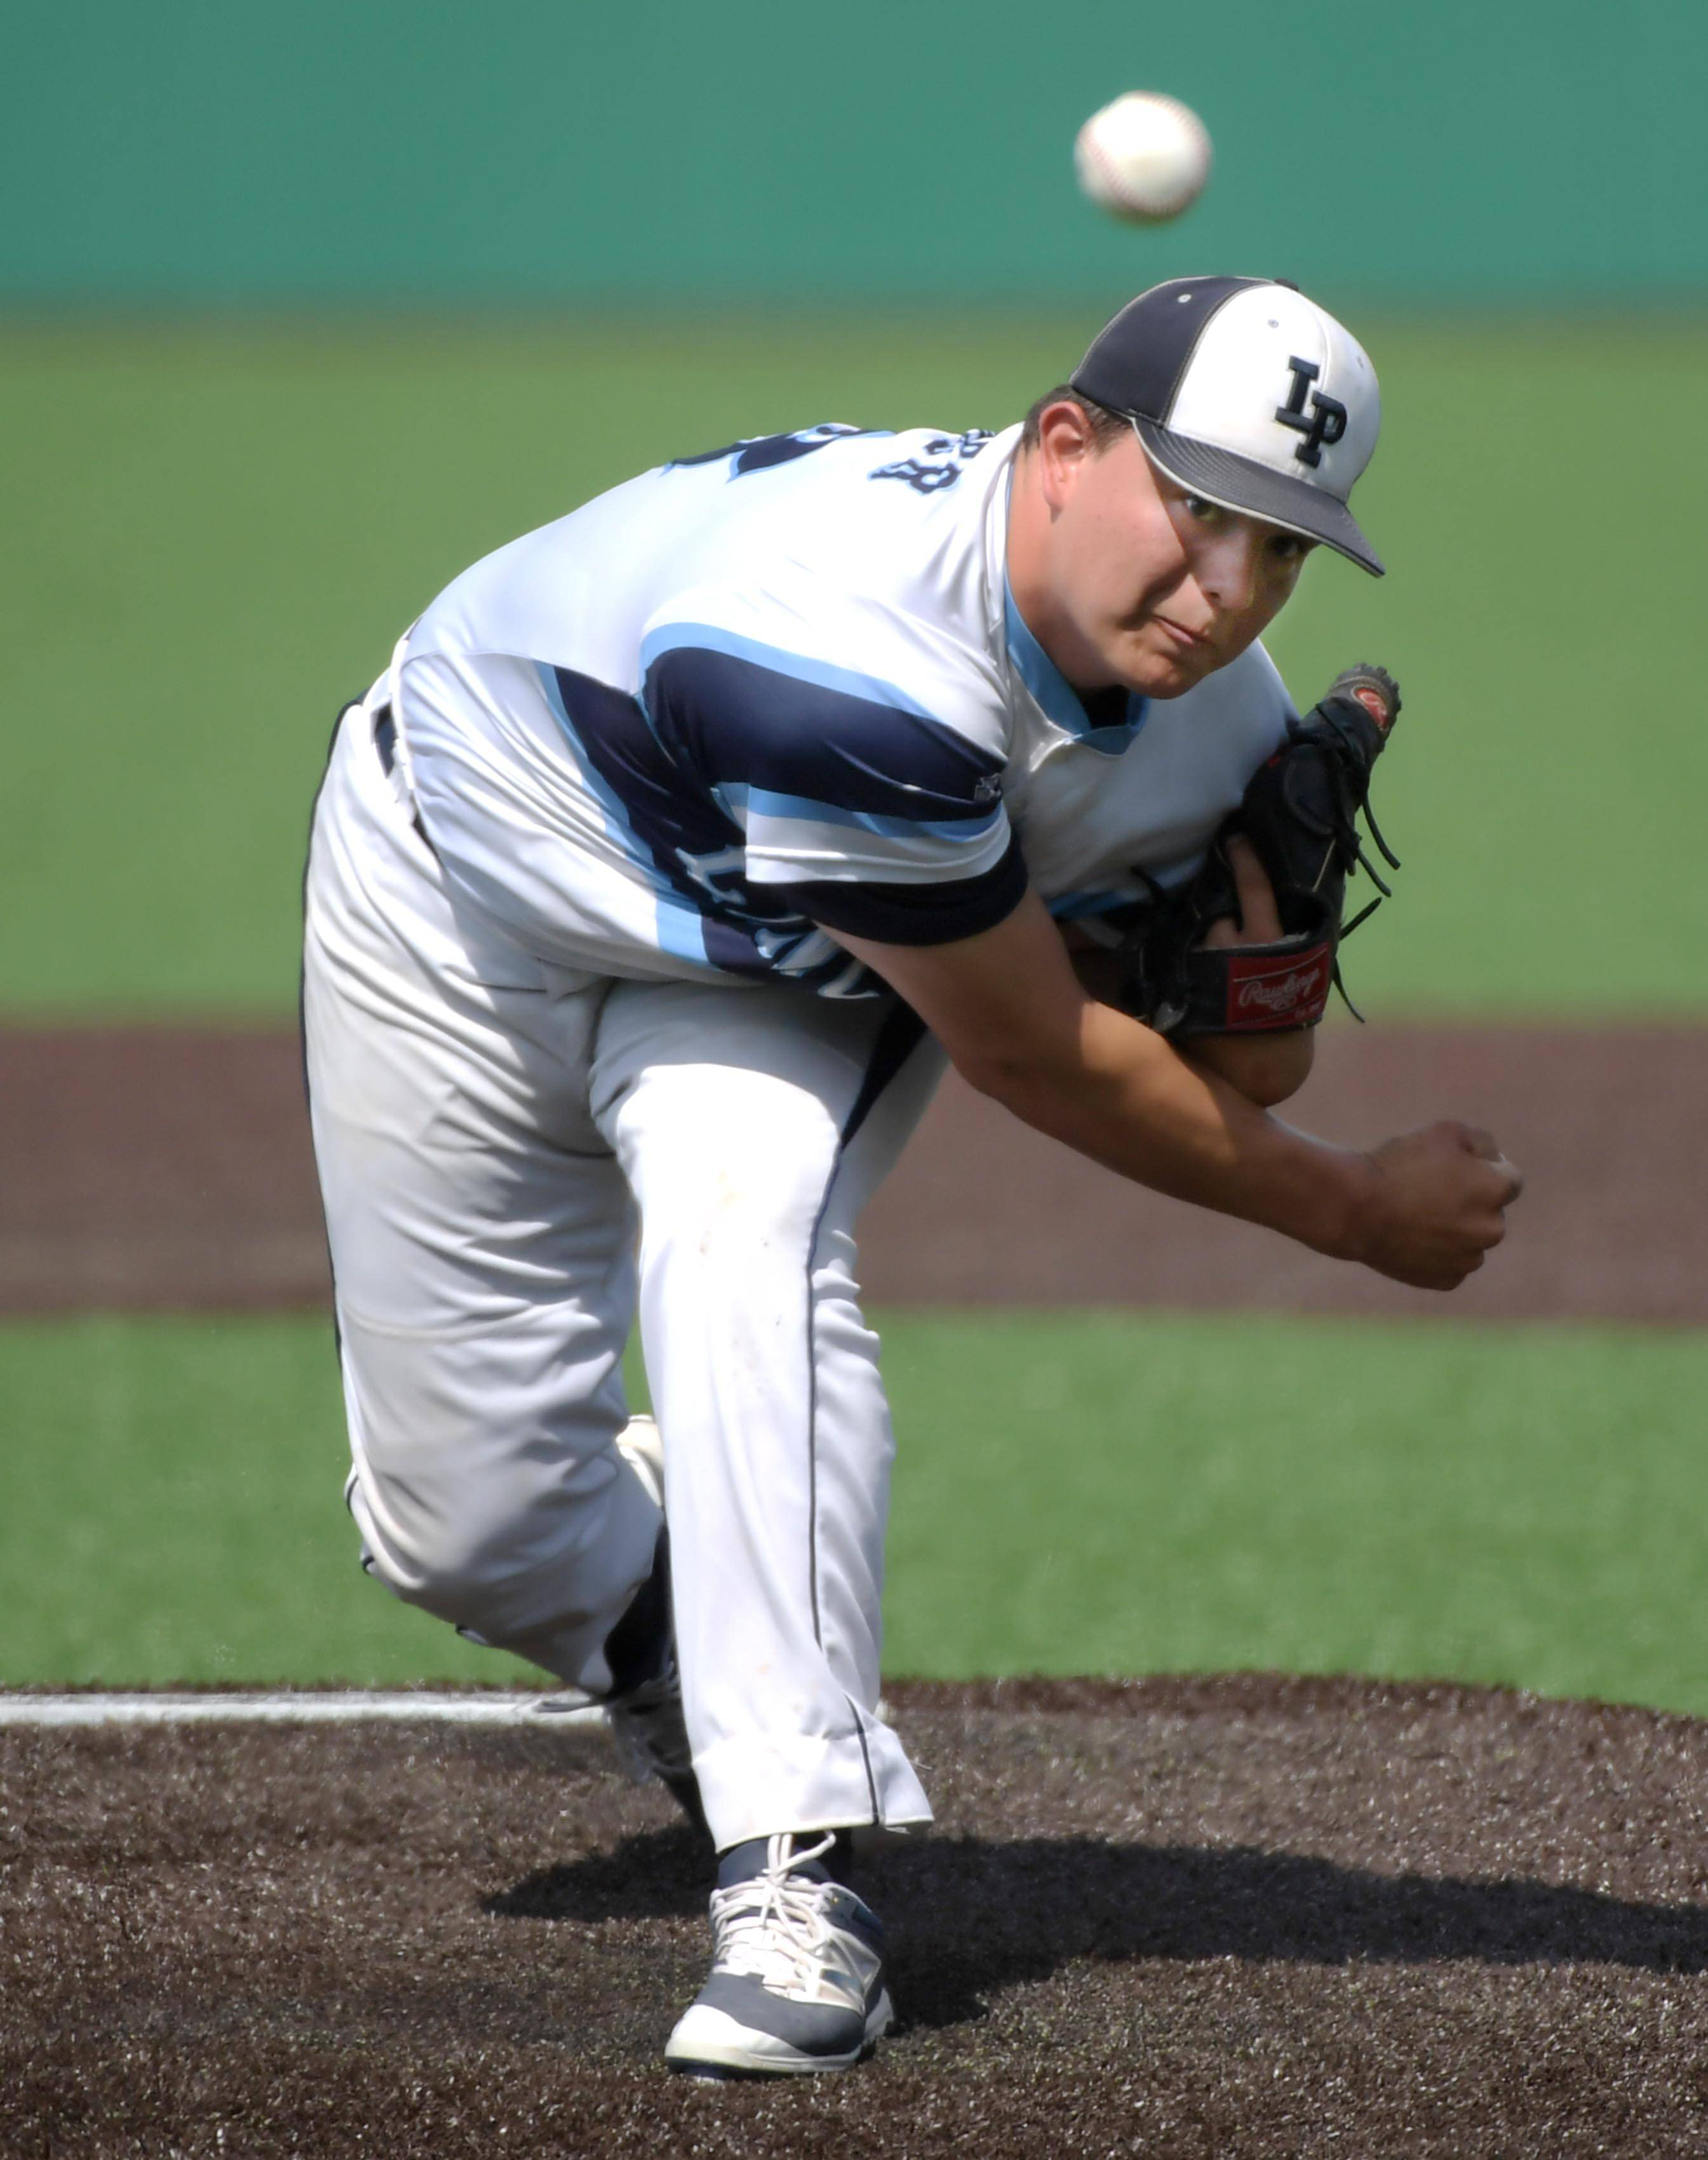 Lake Park starting pitcher Jay Palmer throws against Sandburg in the Class 4A state baseball third place game at Route 66 Stadium in Joliet Saturday.